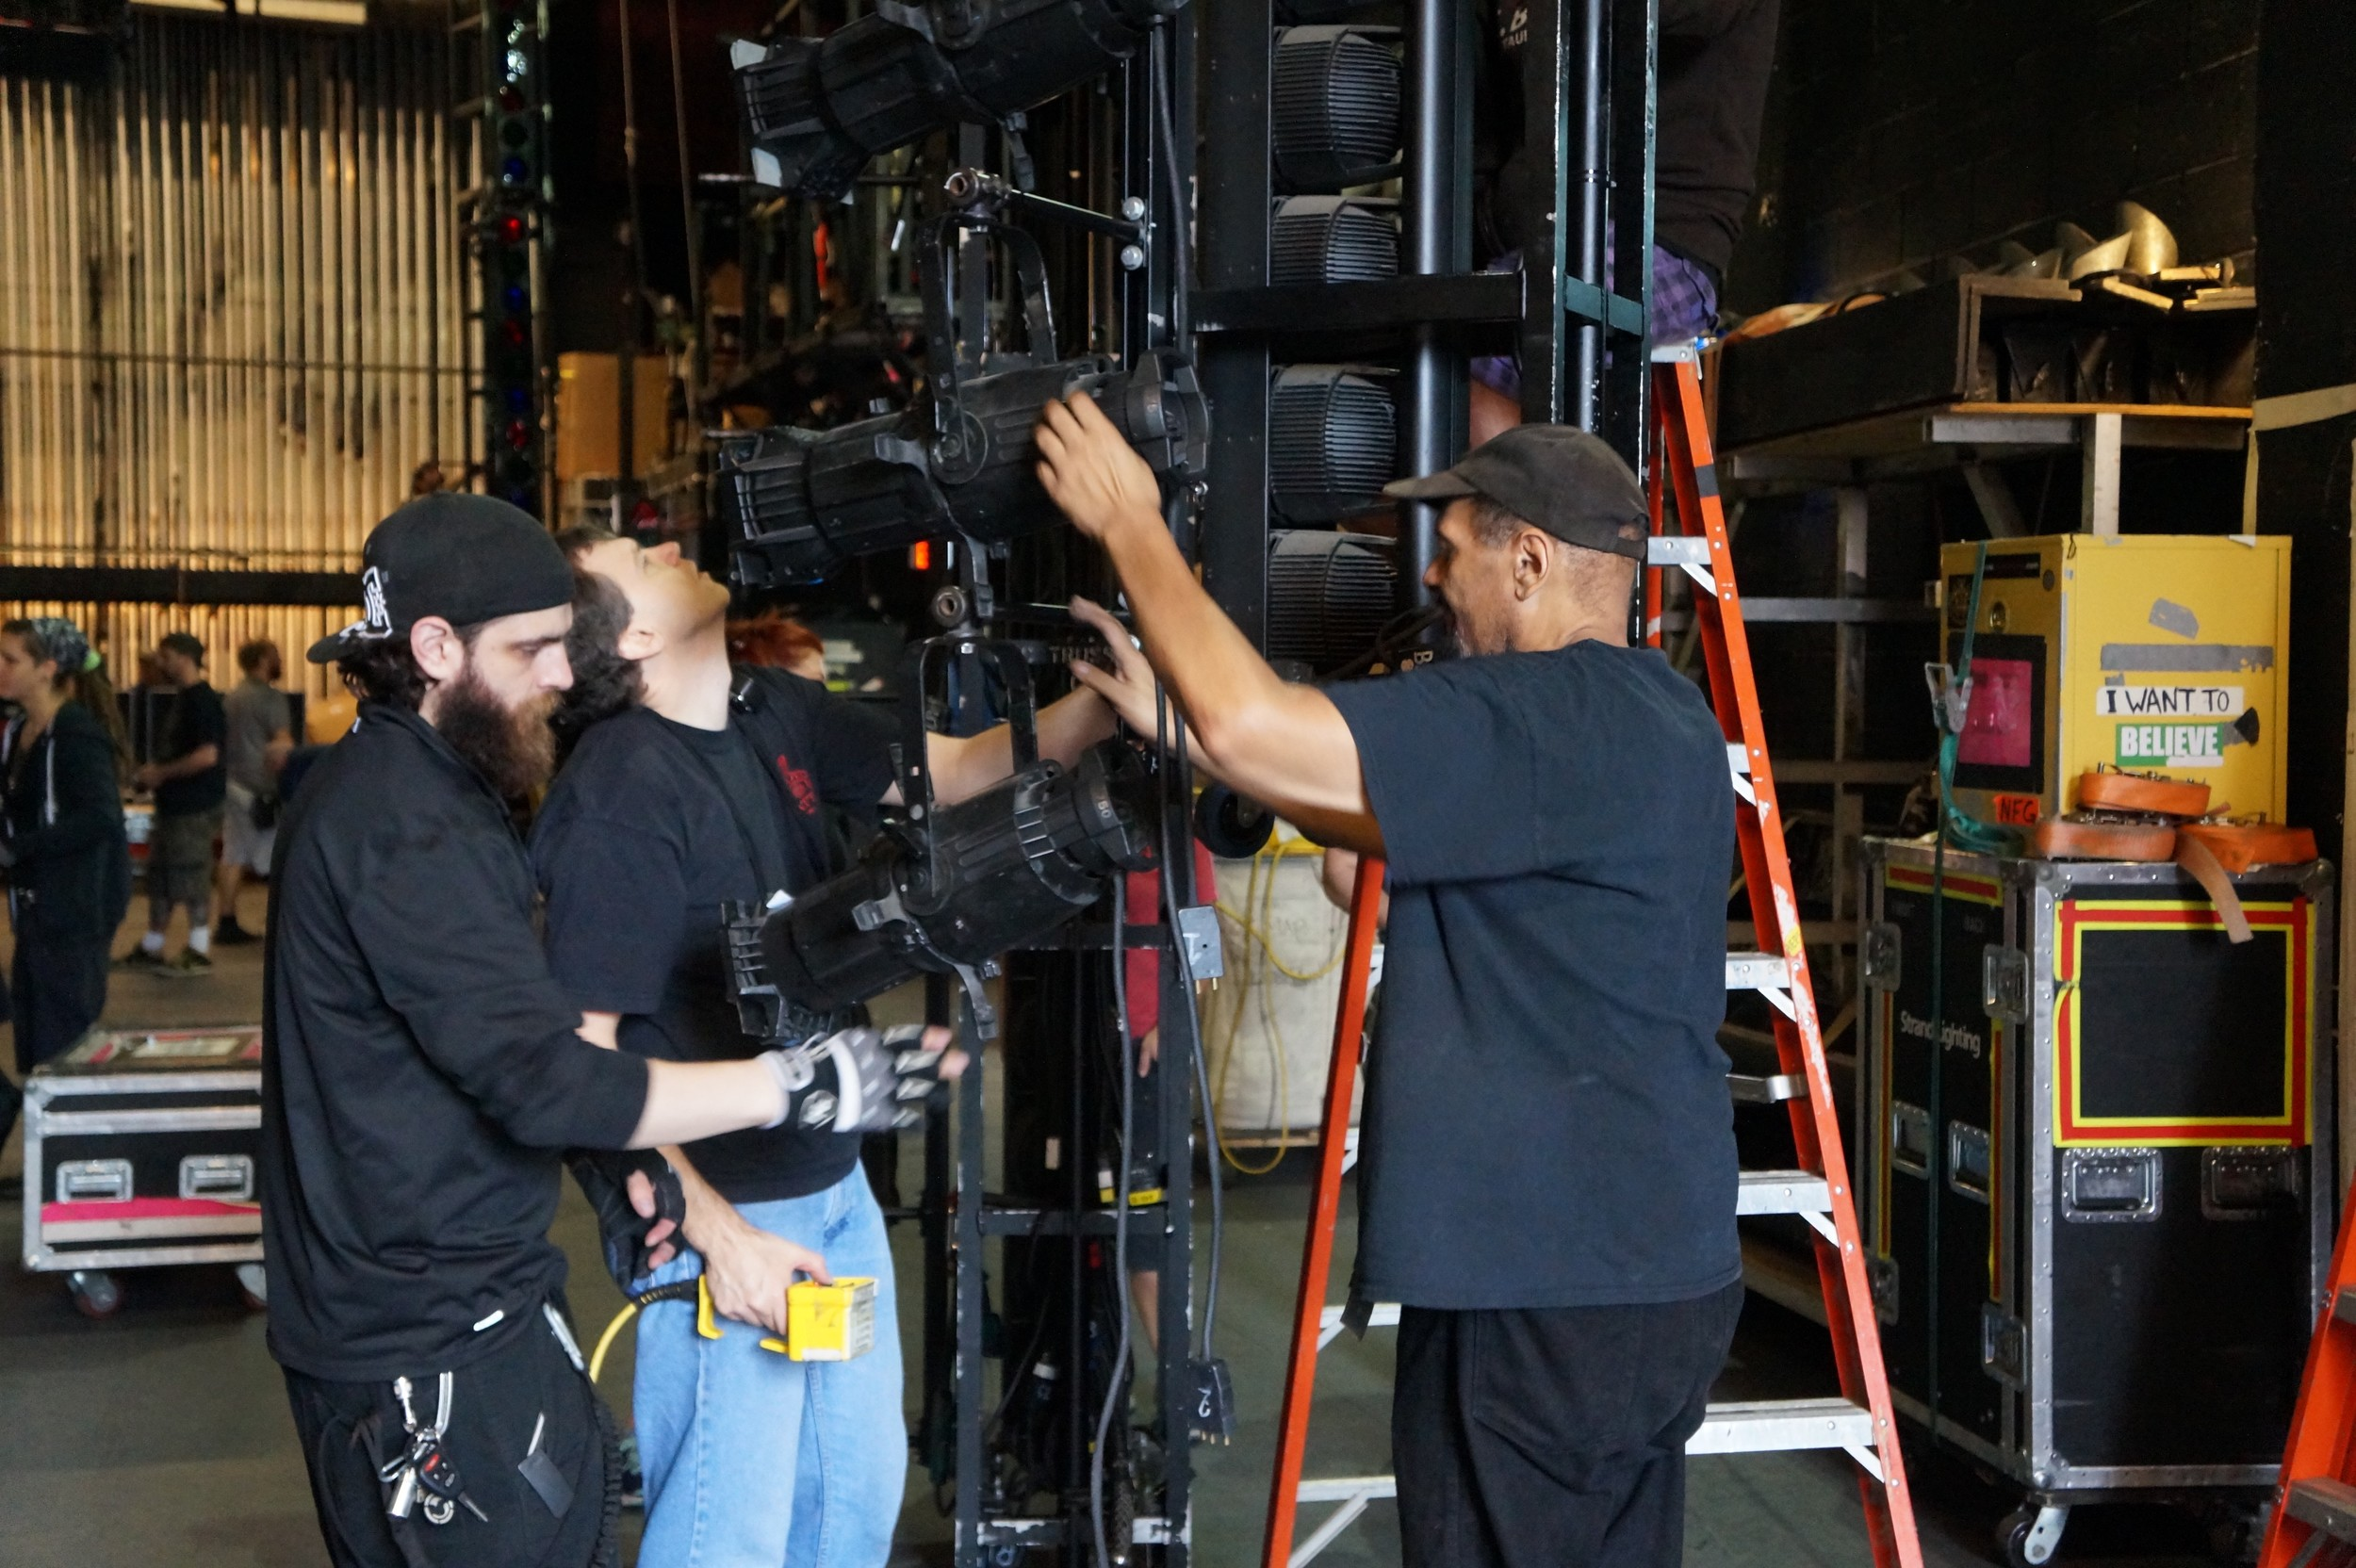 Crew members prepare the lights